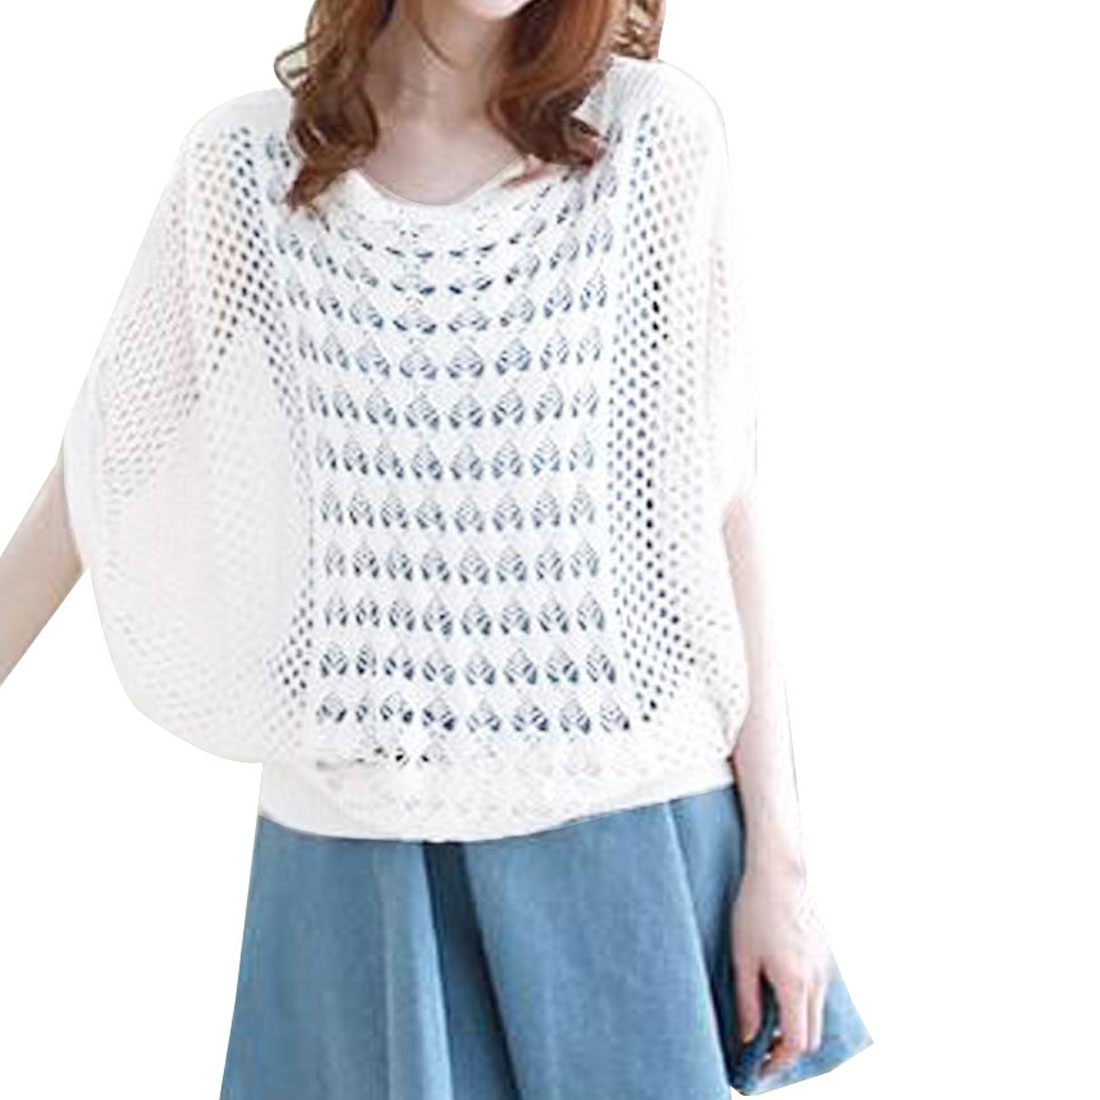 Scalloped Neck Dolman Sleeve Hollow Out Details Women White Knit Jumper S